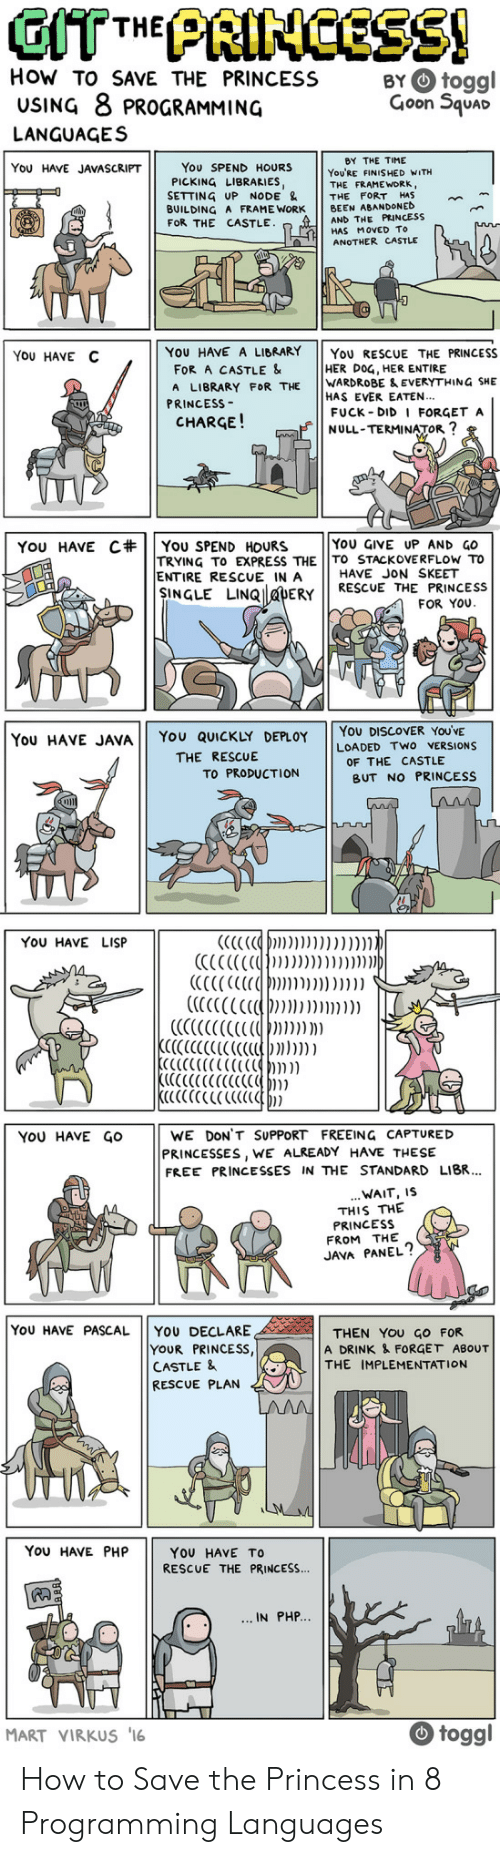 skeet: How TO SAVE THE PRINCESS BYtoggl  USING 8 PROGRAMMING  Goon 5quac  LANGUAGES  BY THE TIME  You SPEND HOURS  PICKING LIBRARIES,  YOU HAVE JAVASCRIPT  YoU'RE FINISHED WITH  THE FRAME WORK,  SETTING UP NODE & THE FORT HAS  BUILDING A FRAME WORK BEEN ABANDONED  AND THE PRINCESS  HAS MoVED To  ANOTHER CASTLE  FOR THE CASTLE  YoU HAVE C  YOU HAVE A LIBRARY YoU RESCUE THE PRINCESS  FOR A CASTLE &  A LIBRARY FOR THE WARDROBE & EVERYTHING SHE  HER DOG, HER ENTIRE  HAS EVER EATEN..  FUCK DID I FORGET A  NULL-TERMINATOR  PRINCESs-  CHARGE!  YOU GIVE UP AND GO  TRYING TO EXPRESS THE TO STACKOVERFLOw To  YOU HAVE C#| | You SPEND HOURS  ENTIRE RESCUE IN A  HAVE JON SKEET  NGLE LINQ DERY RESCUE THE PRINCESS  FOR YOU  You HAVE JAVA YOU QUICKLY DEPLOY YOU DISCOVER YOUVE  LOADED TWO VERSIONS  THE RESCUE  OF THE CASTLE  TO PRODUCTION  BUT NO PRINCESS  YOU HAVE LISP  YoU HAvE GOWE DON'T SUPPORT FREEING CAPTURED  PRINCESSES, WE ALREADY HAVE THESIE  FREE PRINCESSES IN THE STANDARD LIBR.  WAIT, IS  THIS THE  PRINCESS  FROM THE  JAVA PANEL?  YoU HAVE PASCAL YOU DECLARE  YOUR PRINCESS  CASTLE &  RESCUE PLAN  THEN YOU GO FOR  A DRINK & FORGET ABOUT  THE IMPLEMENTATION  You HAVE PHP  YOU HAVE TO  RESCUE THE PRINCESS...  IN PHP  MART VIRKUS 16  togg How to Save the Princess in 8 Programming Languages